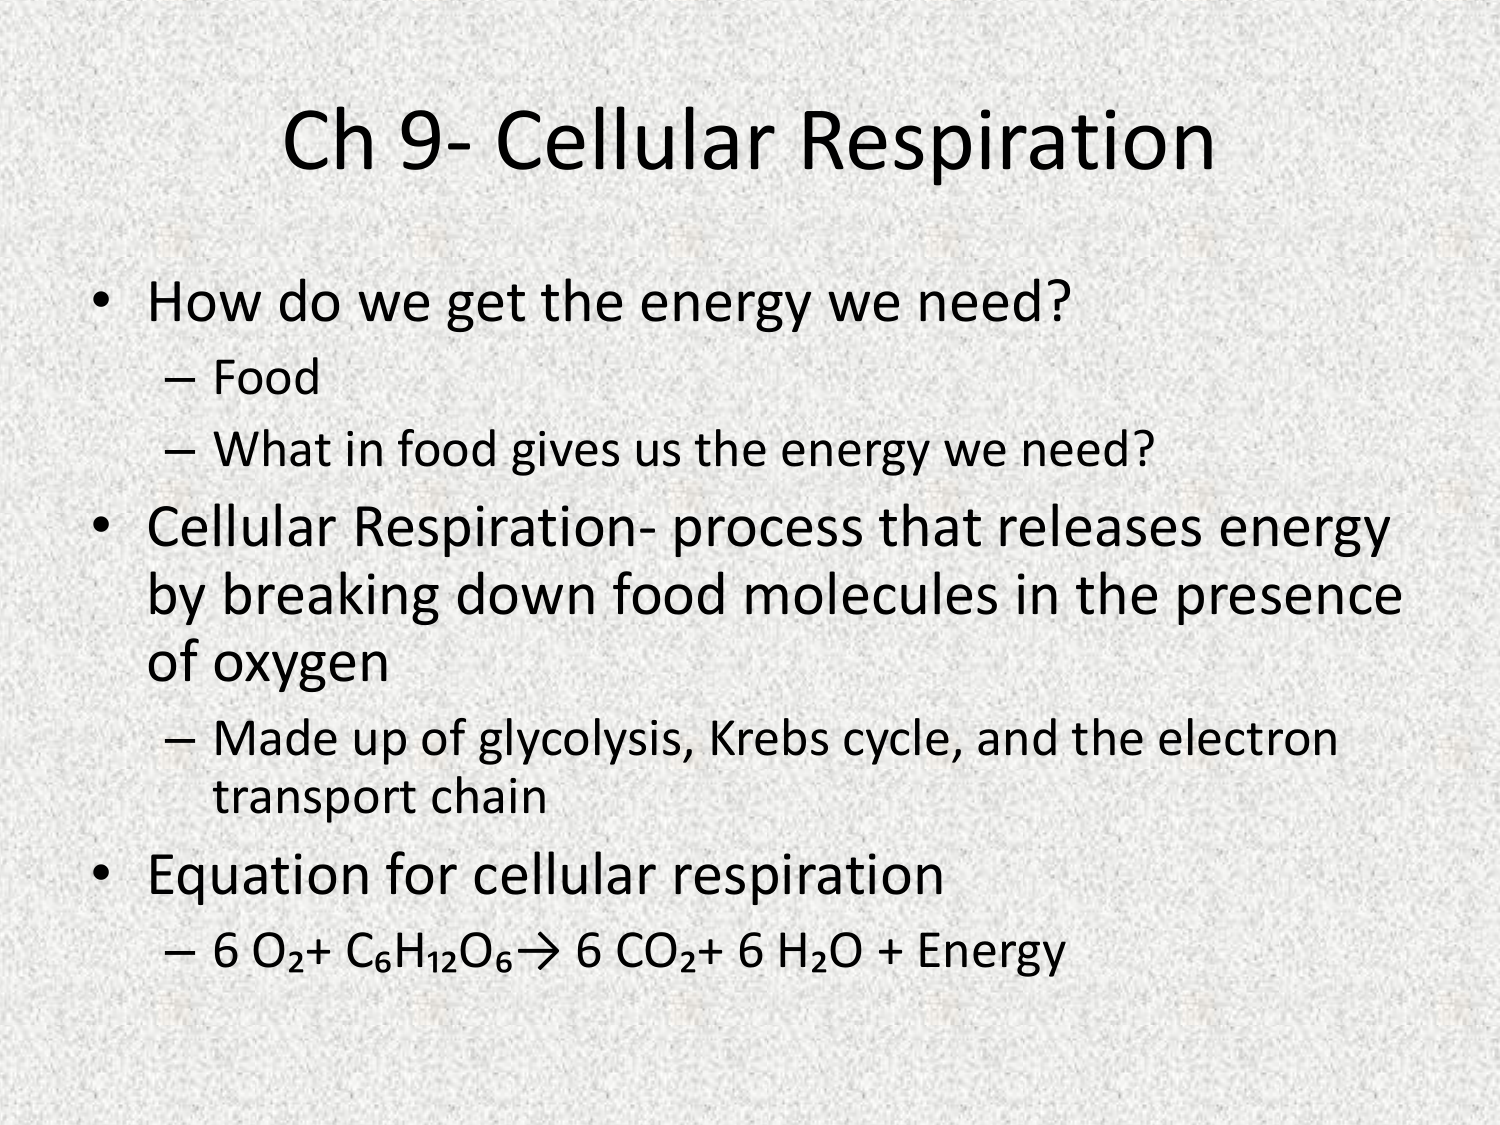 Worksheet 92 The Process Of Cellular Respiration Worksheet Answers